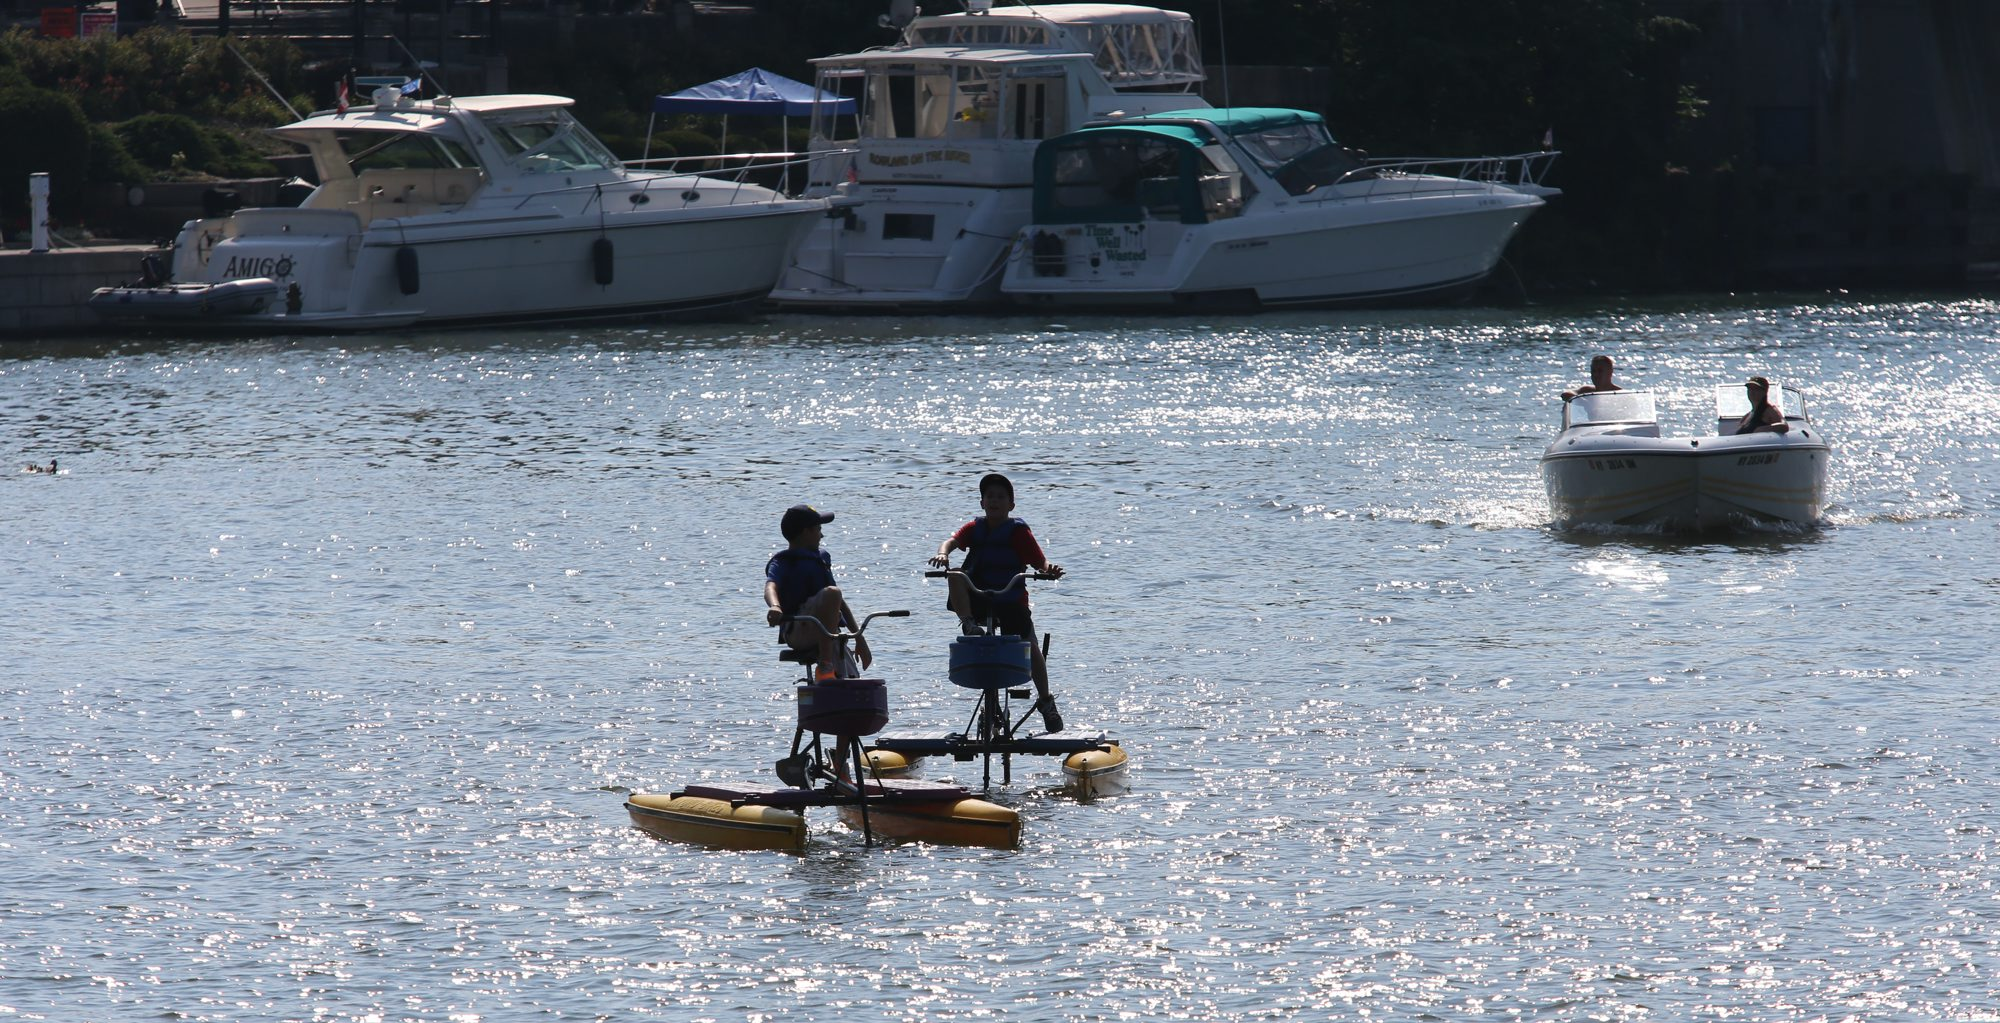 Gateway Harbor during Canalfest on July 17, 2013.   (Buffalo News file photo)